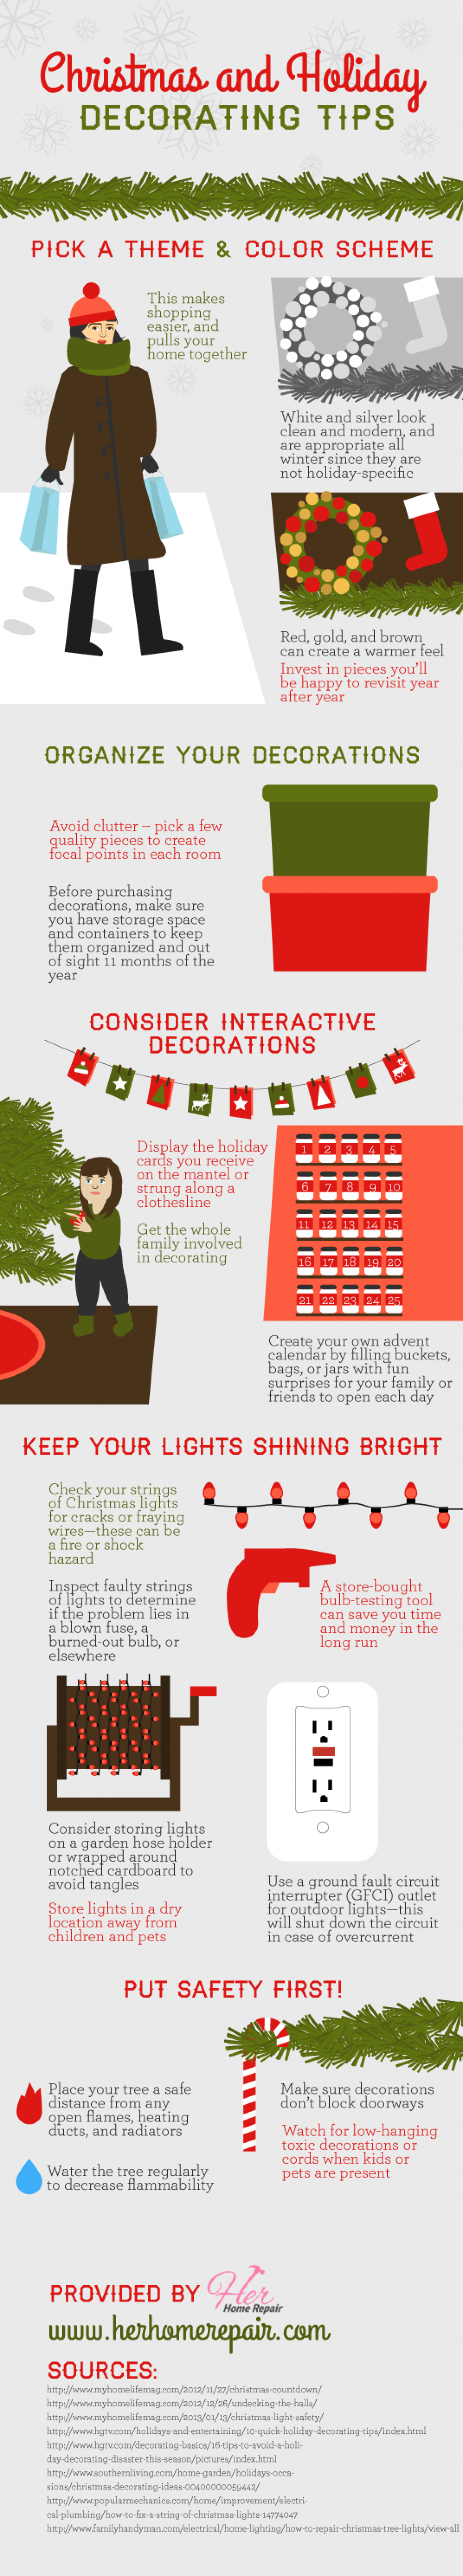 Christmas and Holiday Decorating Tips Infographic